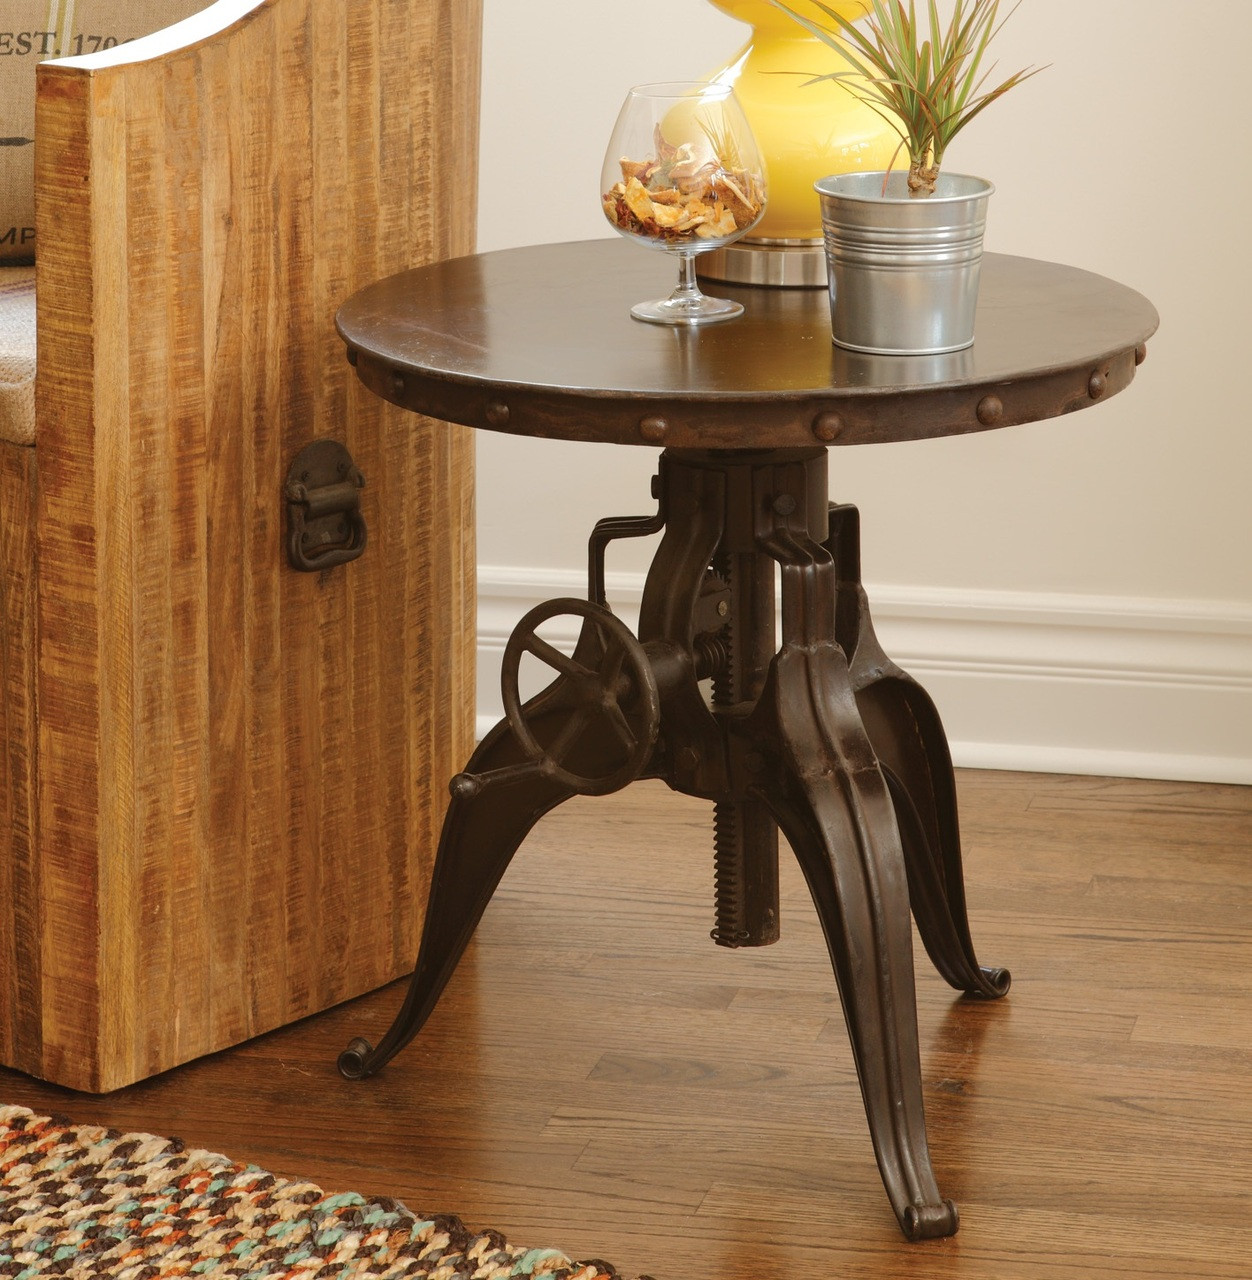 Gentil Black Iron Crank Side Table